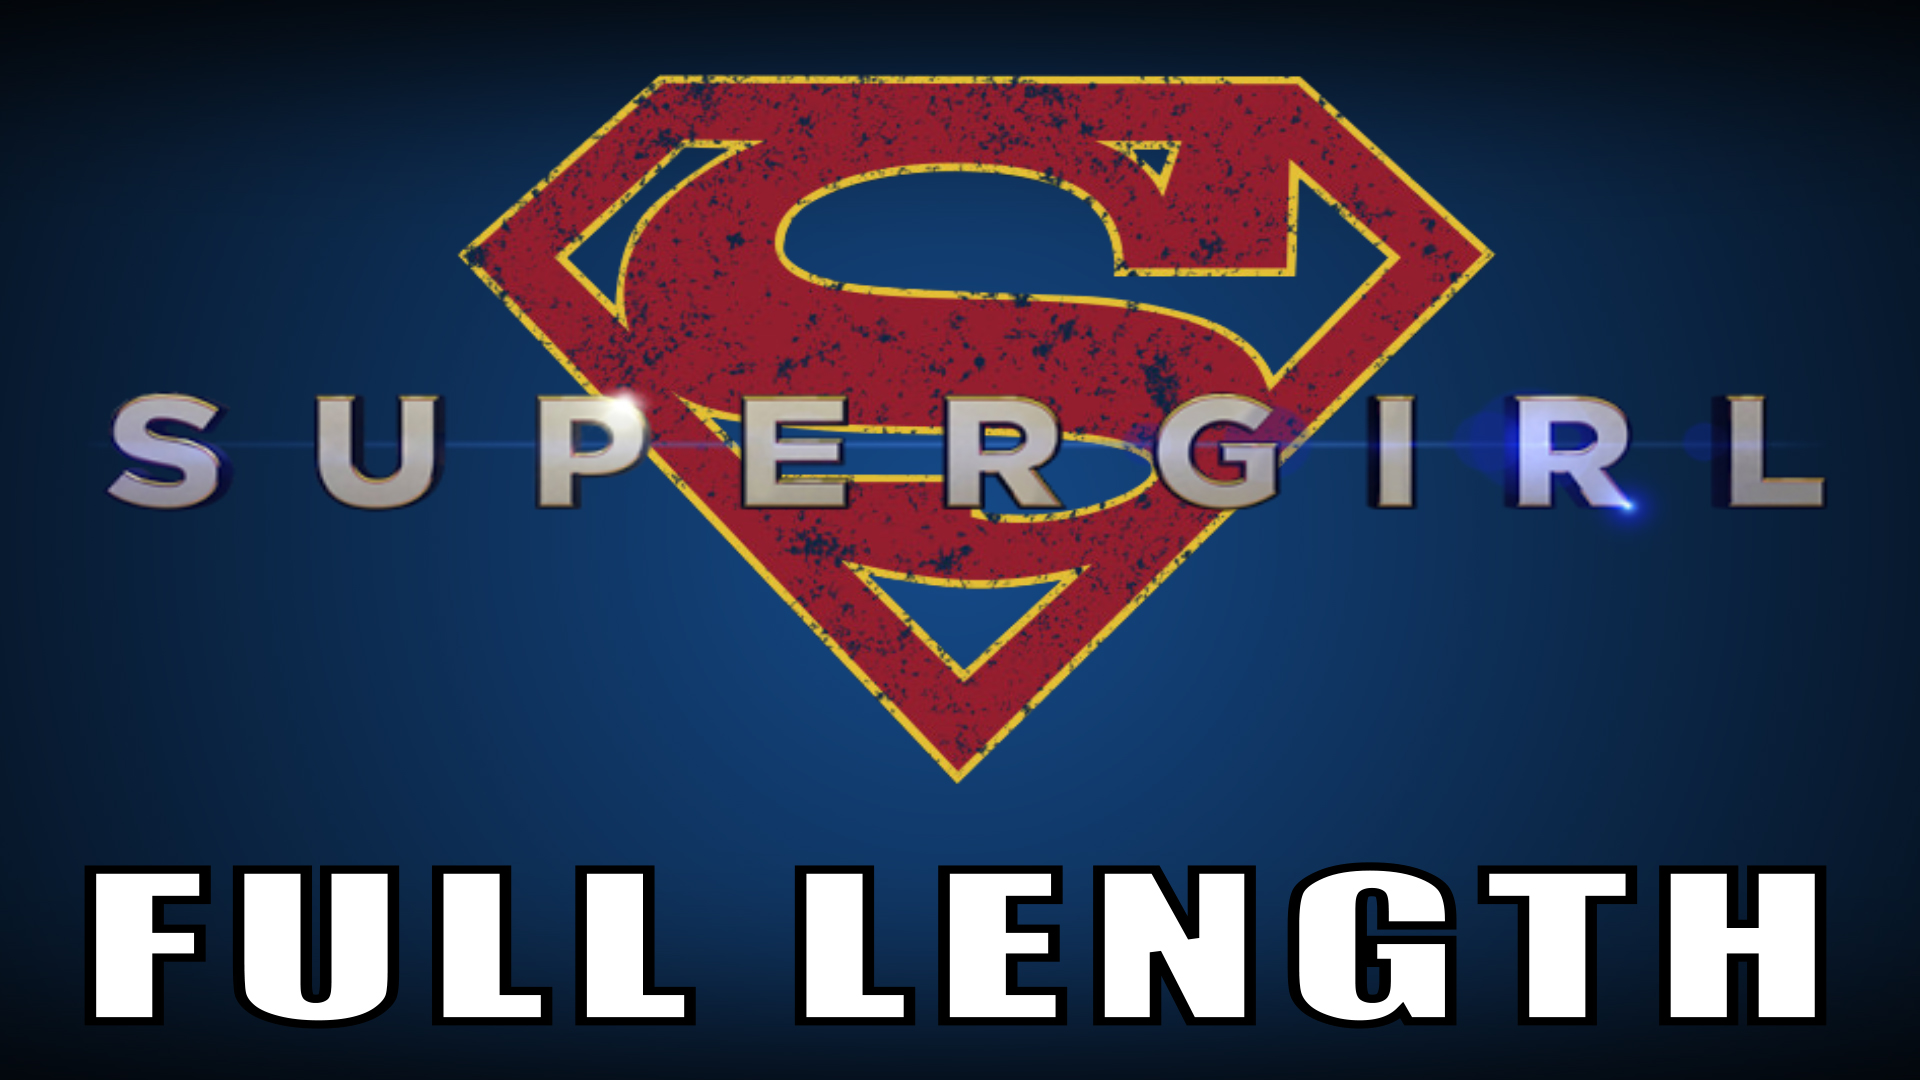 supergirl full length icon_00000